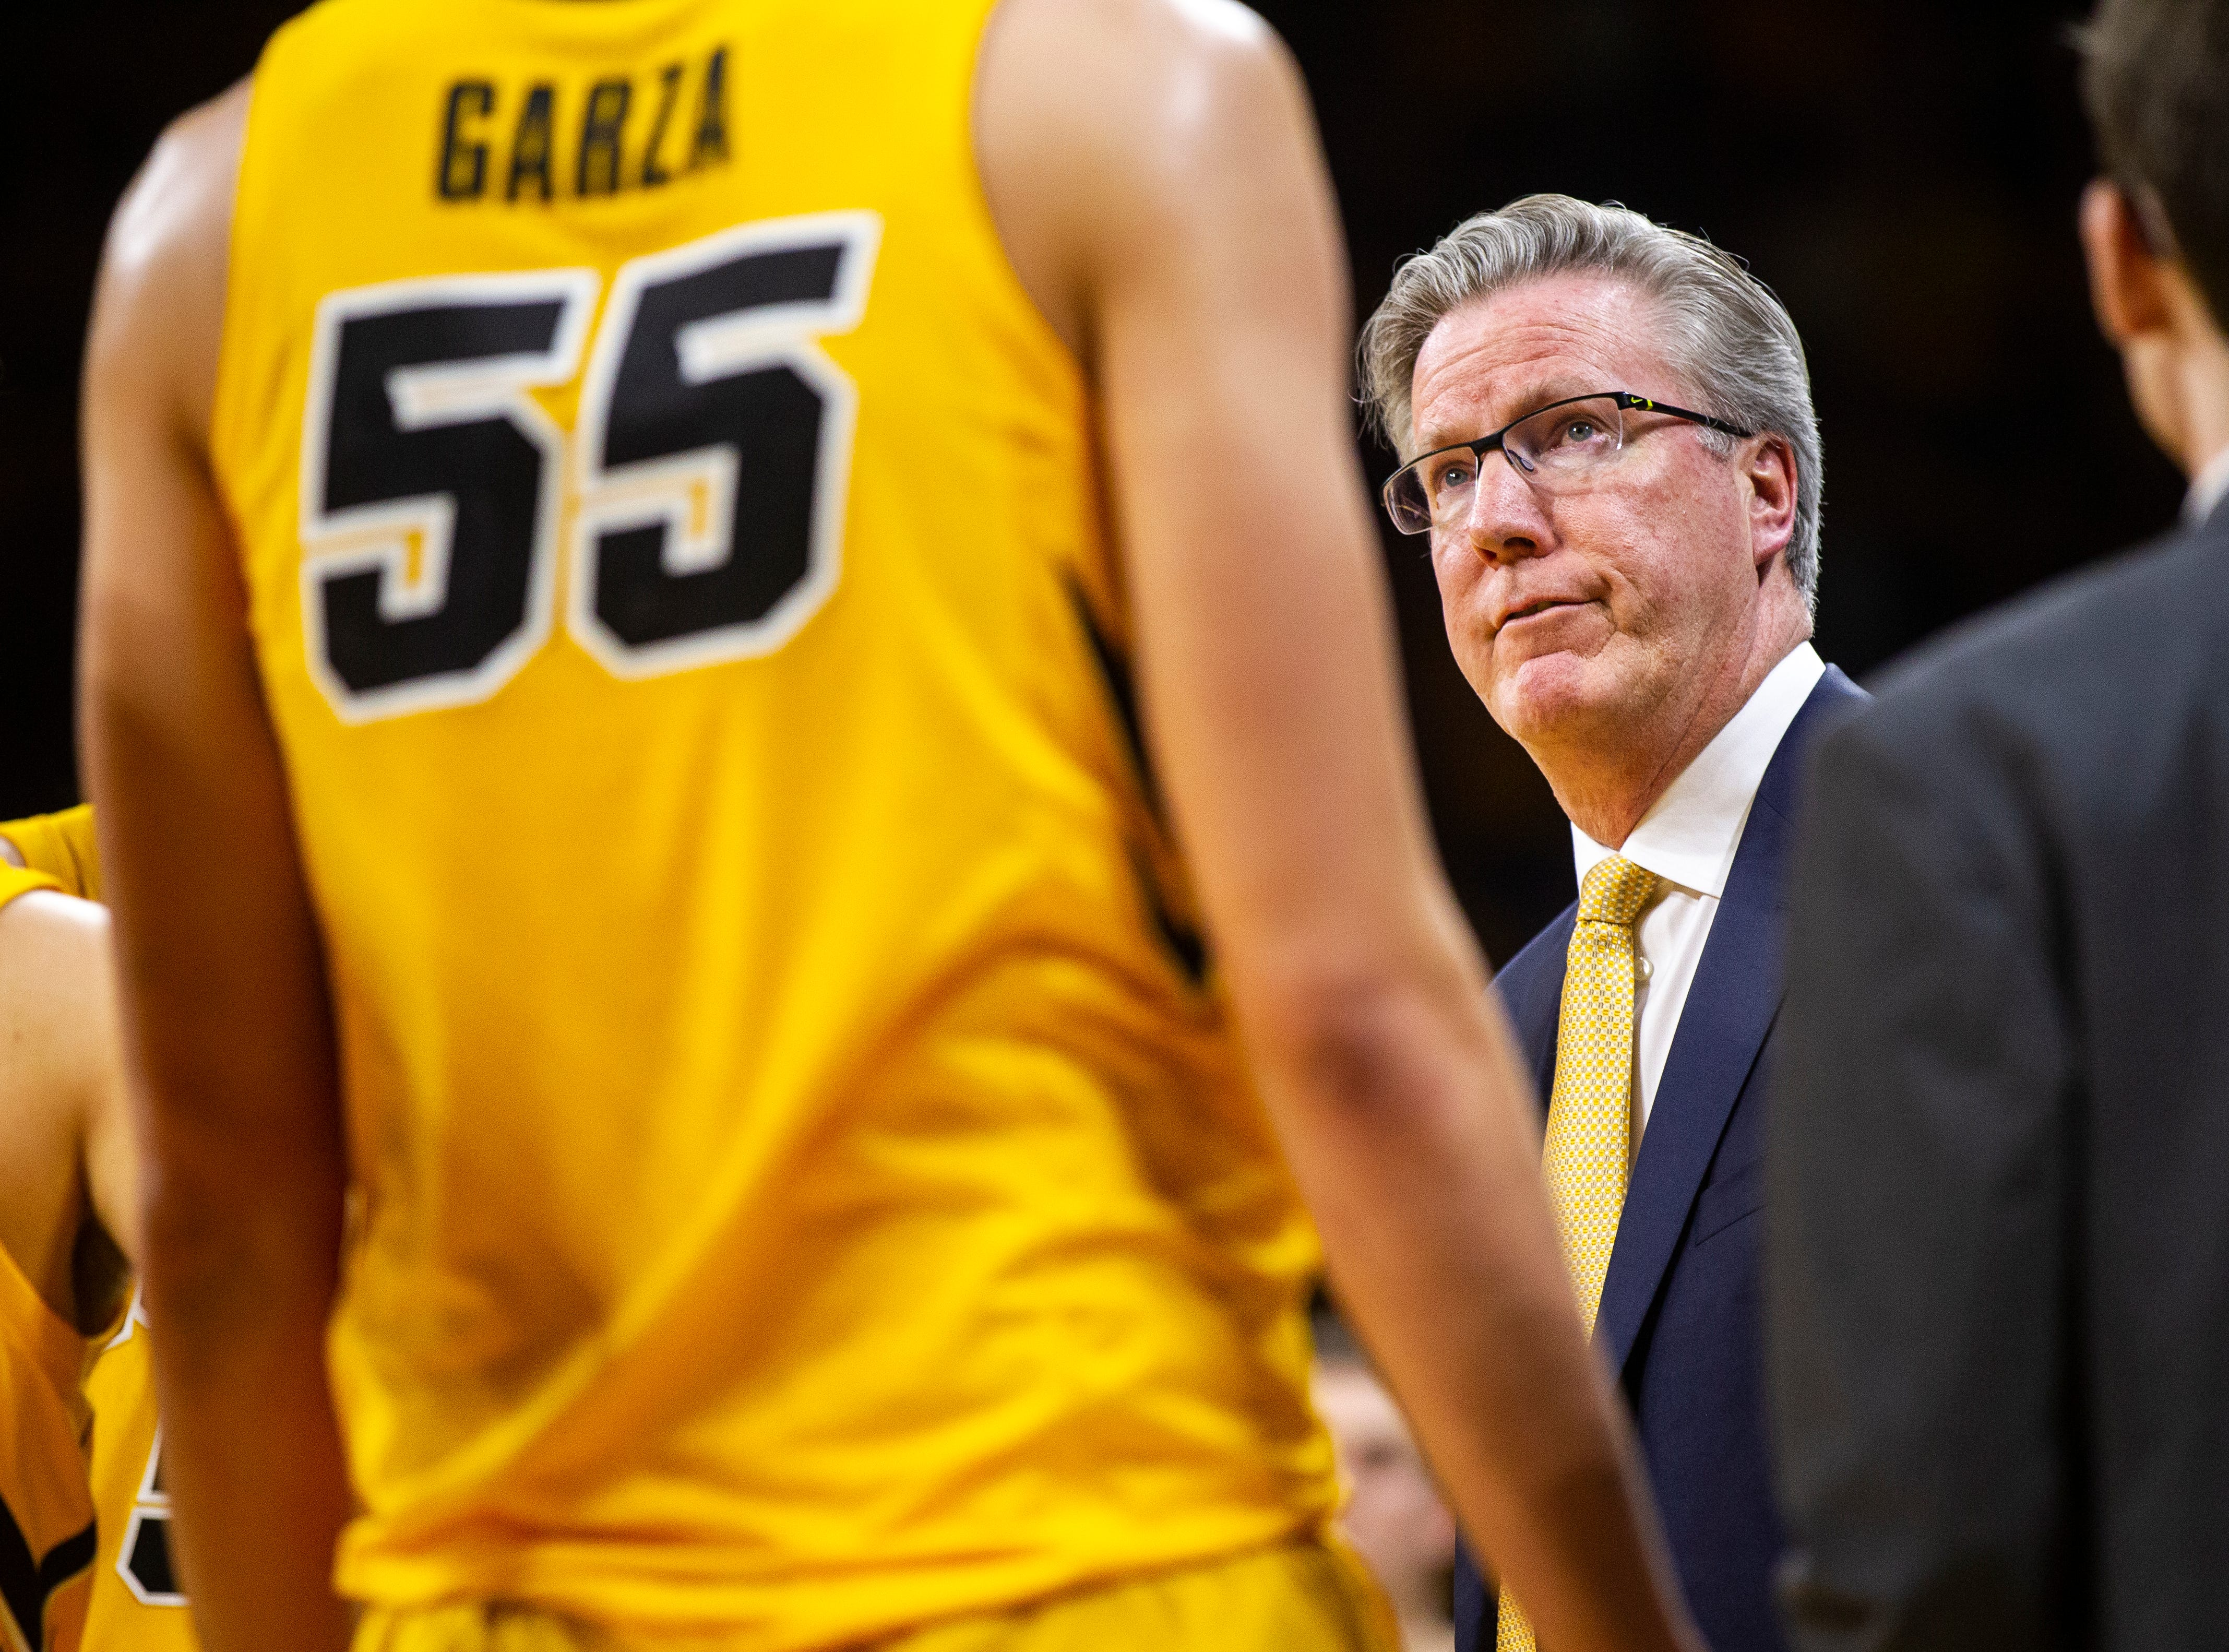 Iowa men's basketball head coach Fran McCaffery looks up at the scoreboard during a NCAA Big Ten Conference men's basketball game on Friday, Nov. 30, 2018, at Carver-Hawkeye Arena in Iowa City.